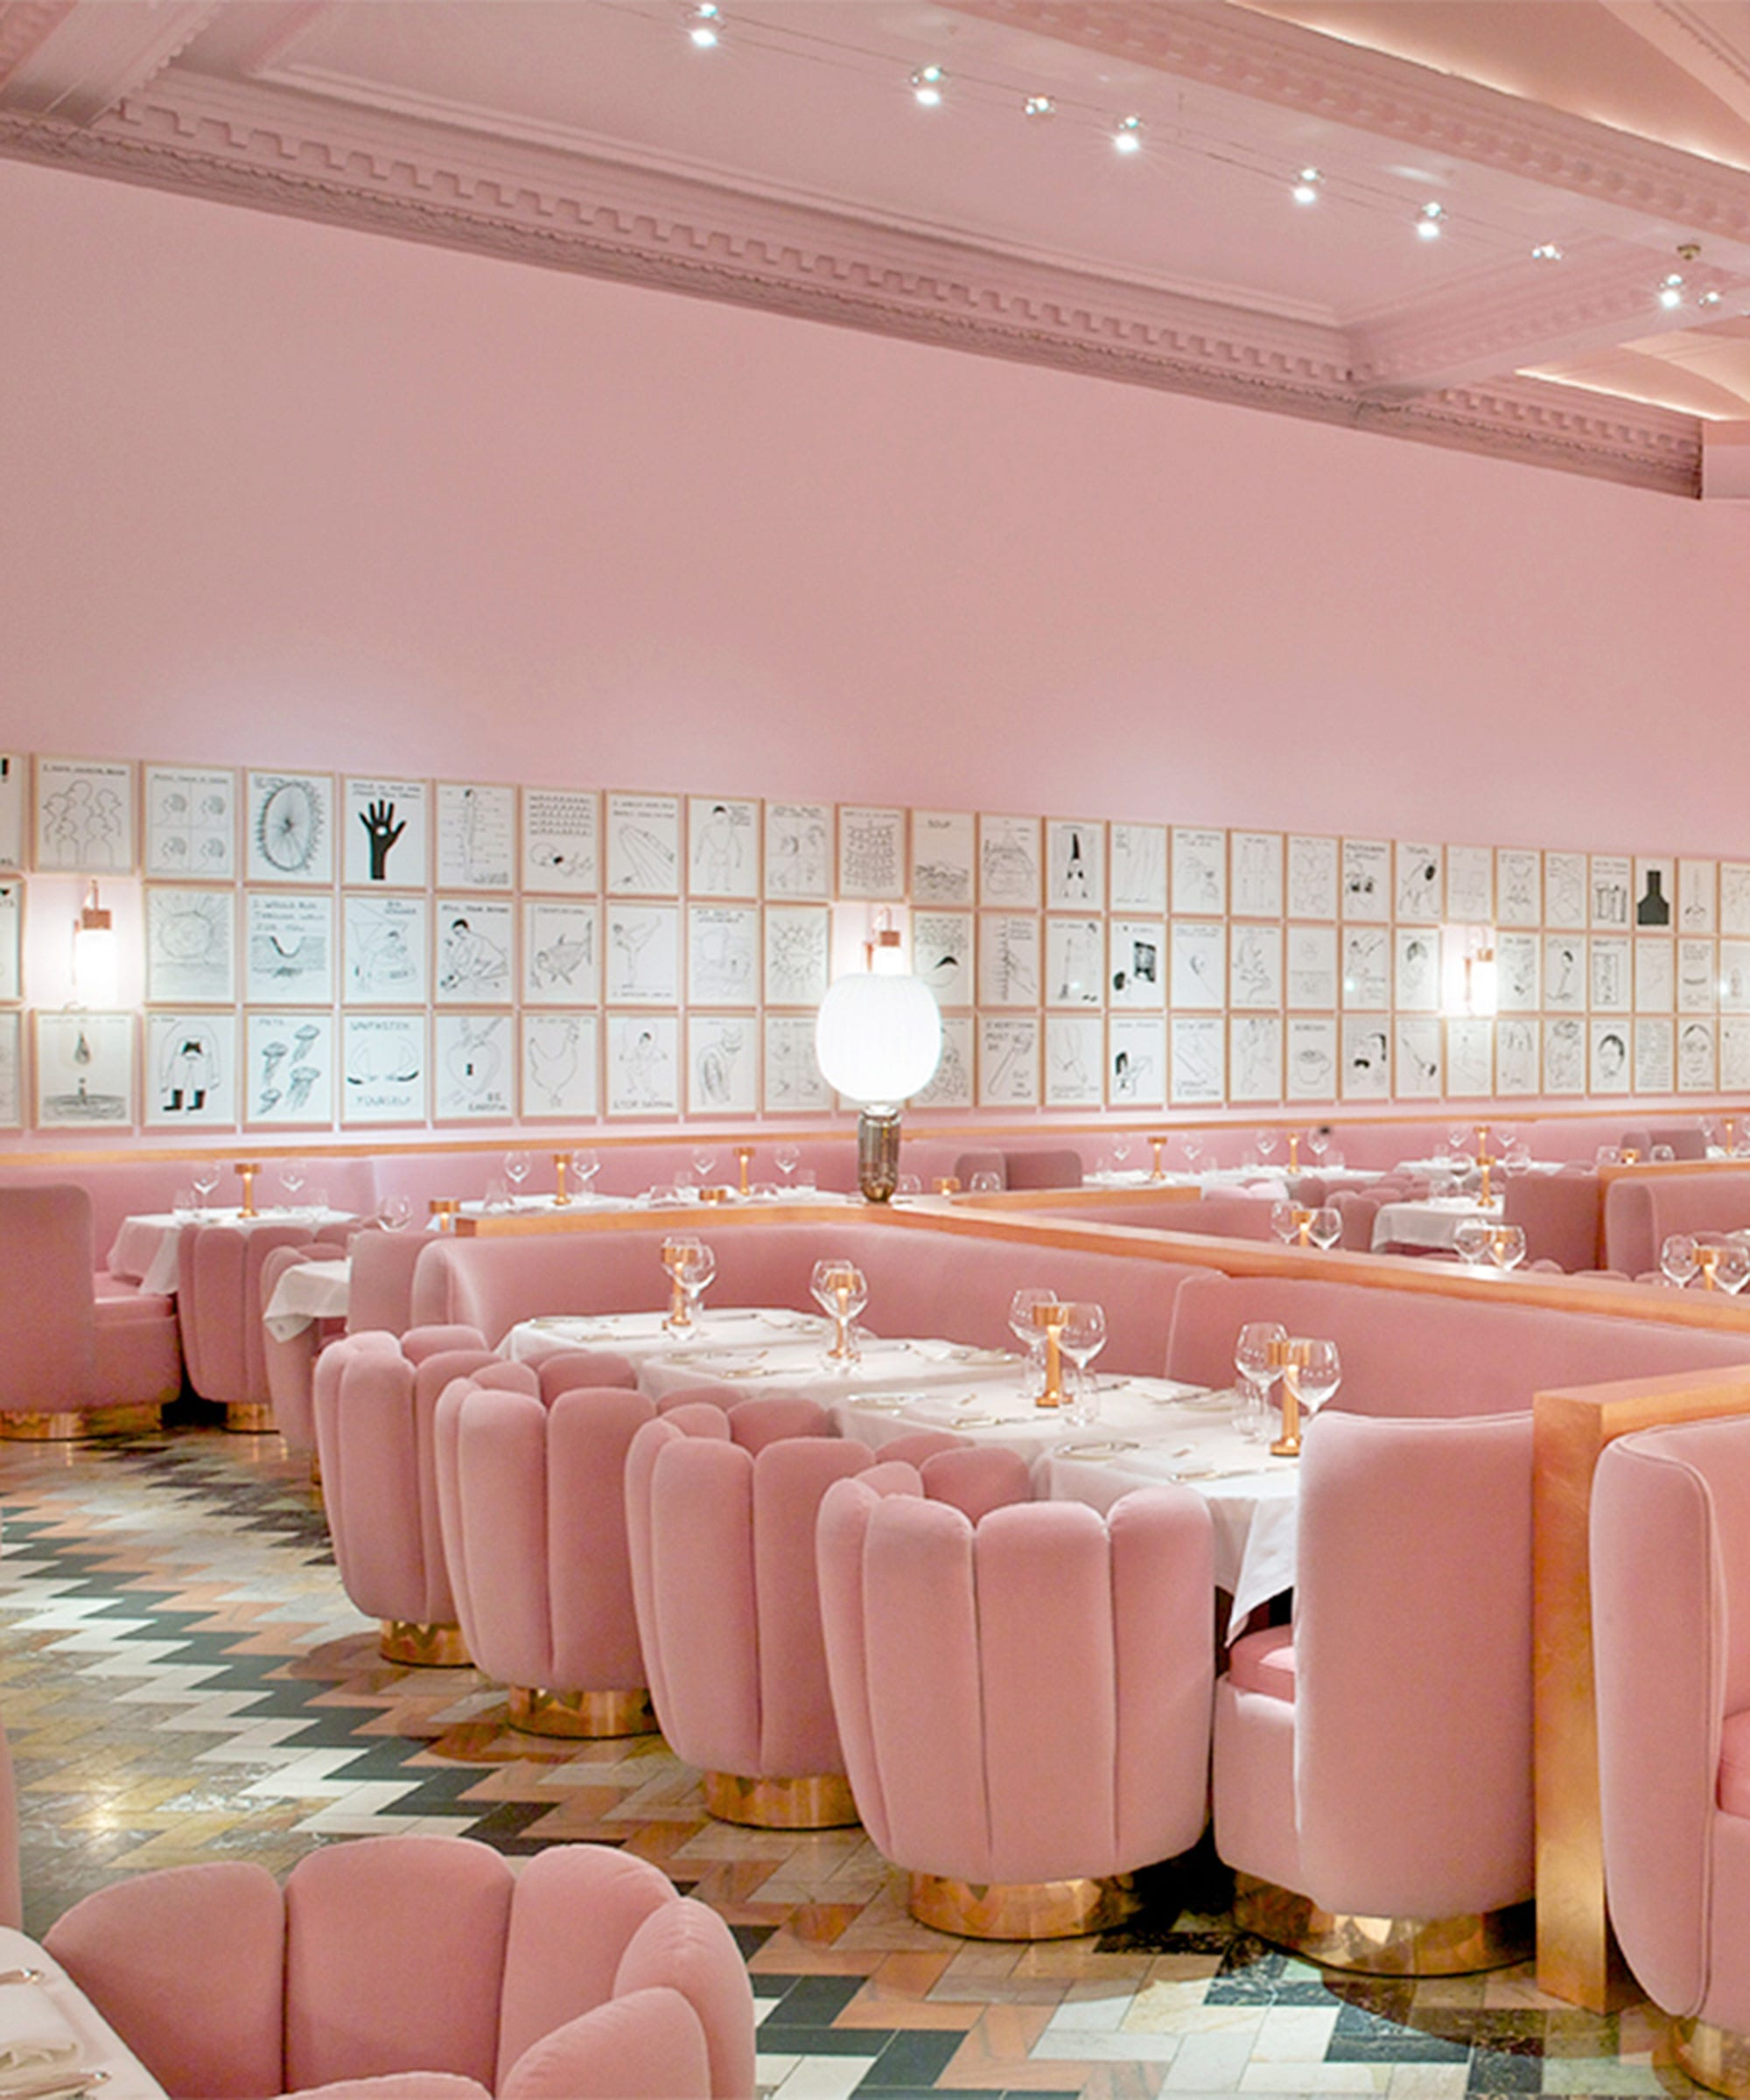 Millennial Pink Backdrops - Pink Instagram Locations